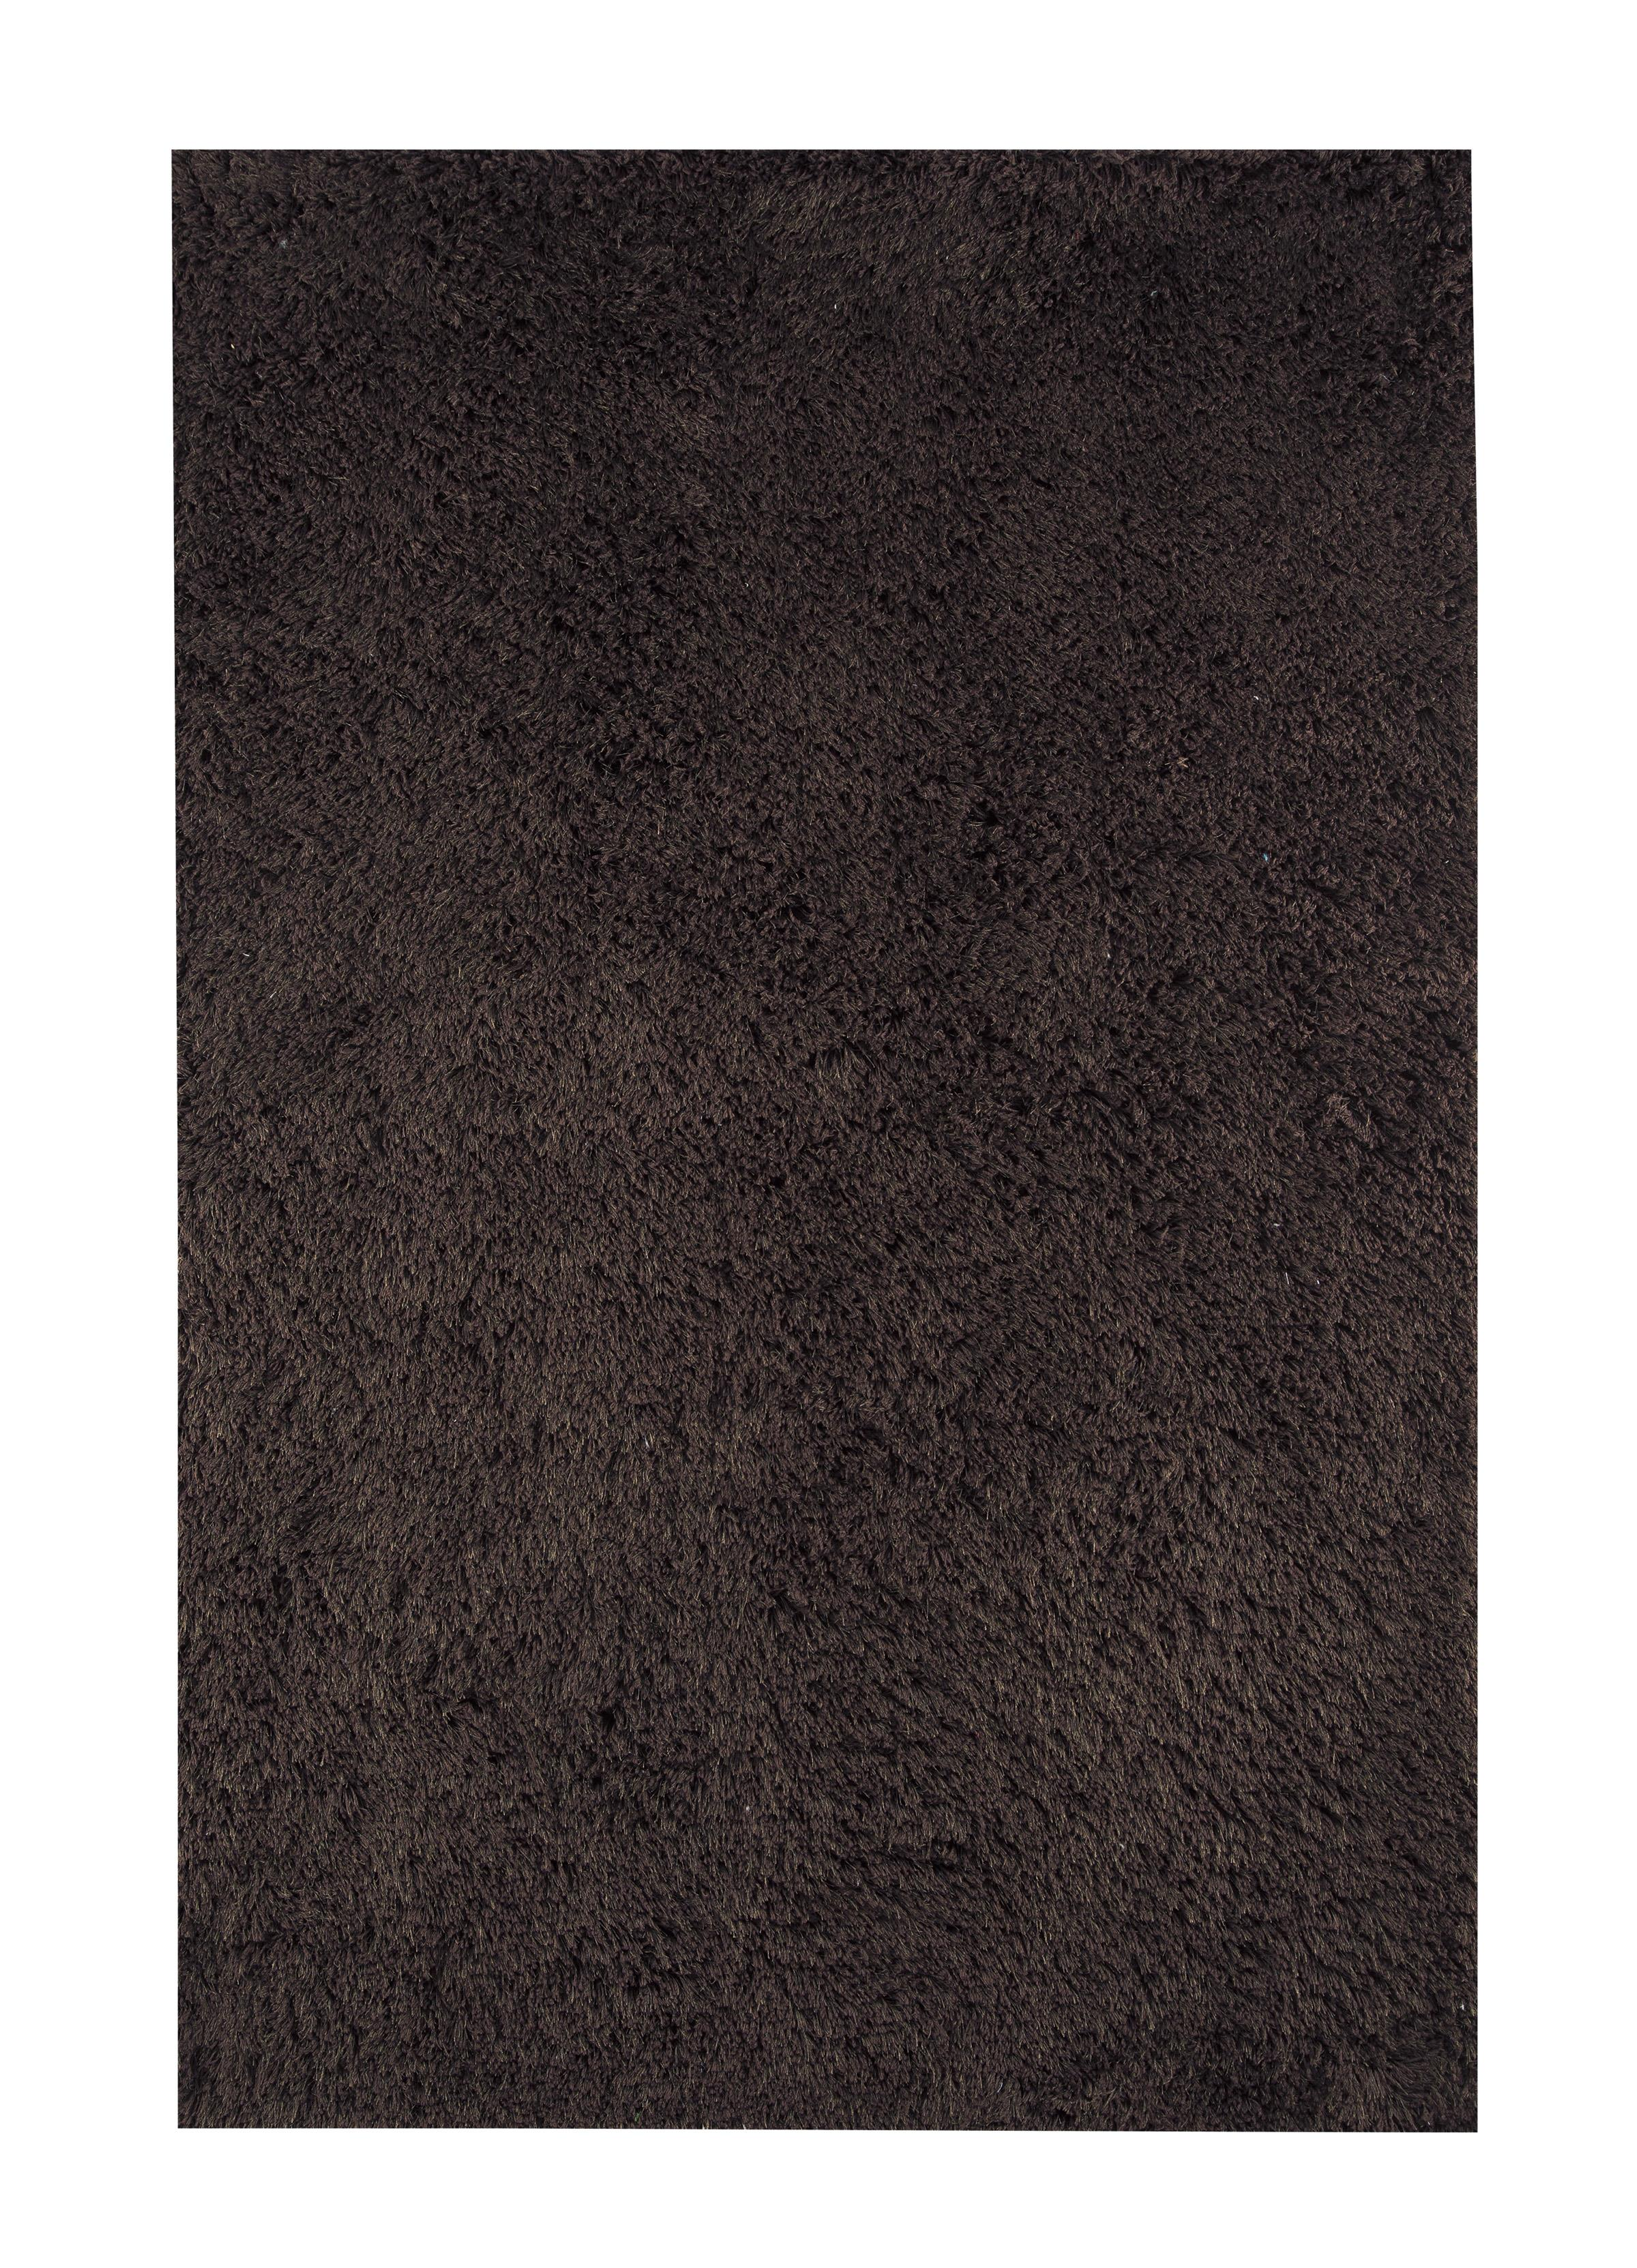 Signature Design by Ashley Transitional Area Rugs Alonso Earth Medium Rug - Item Number: R400592